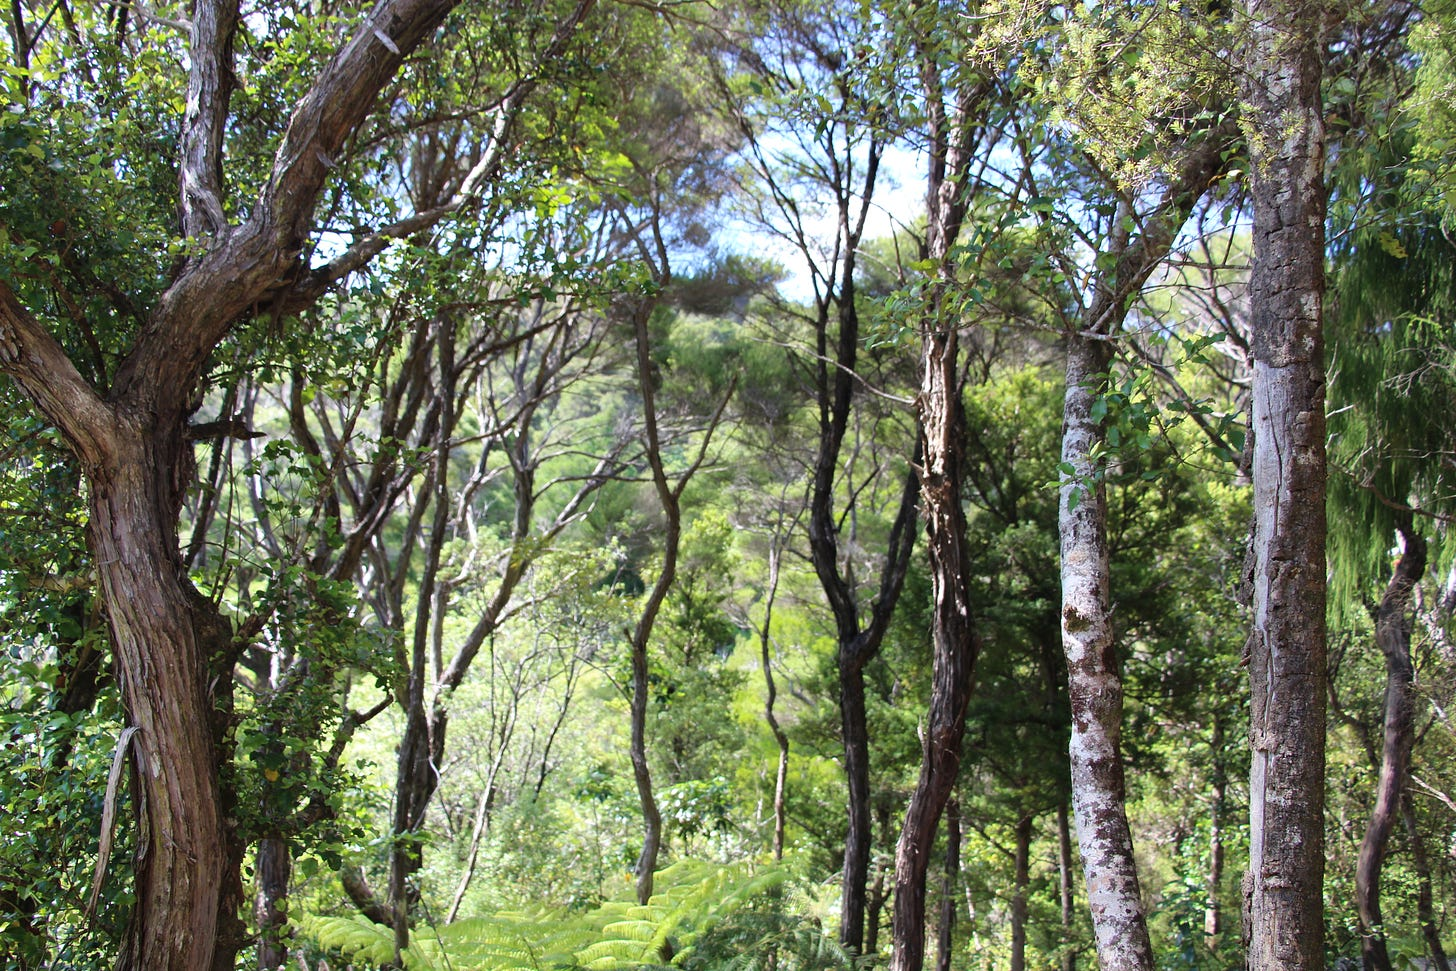 native bush, lots of trees and ferns